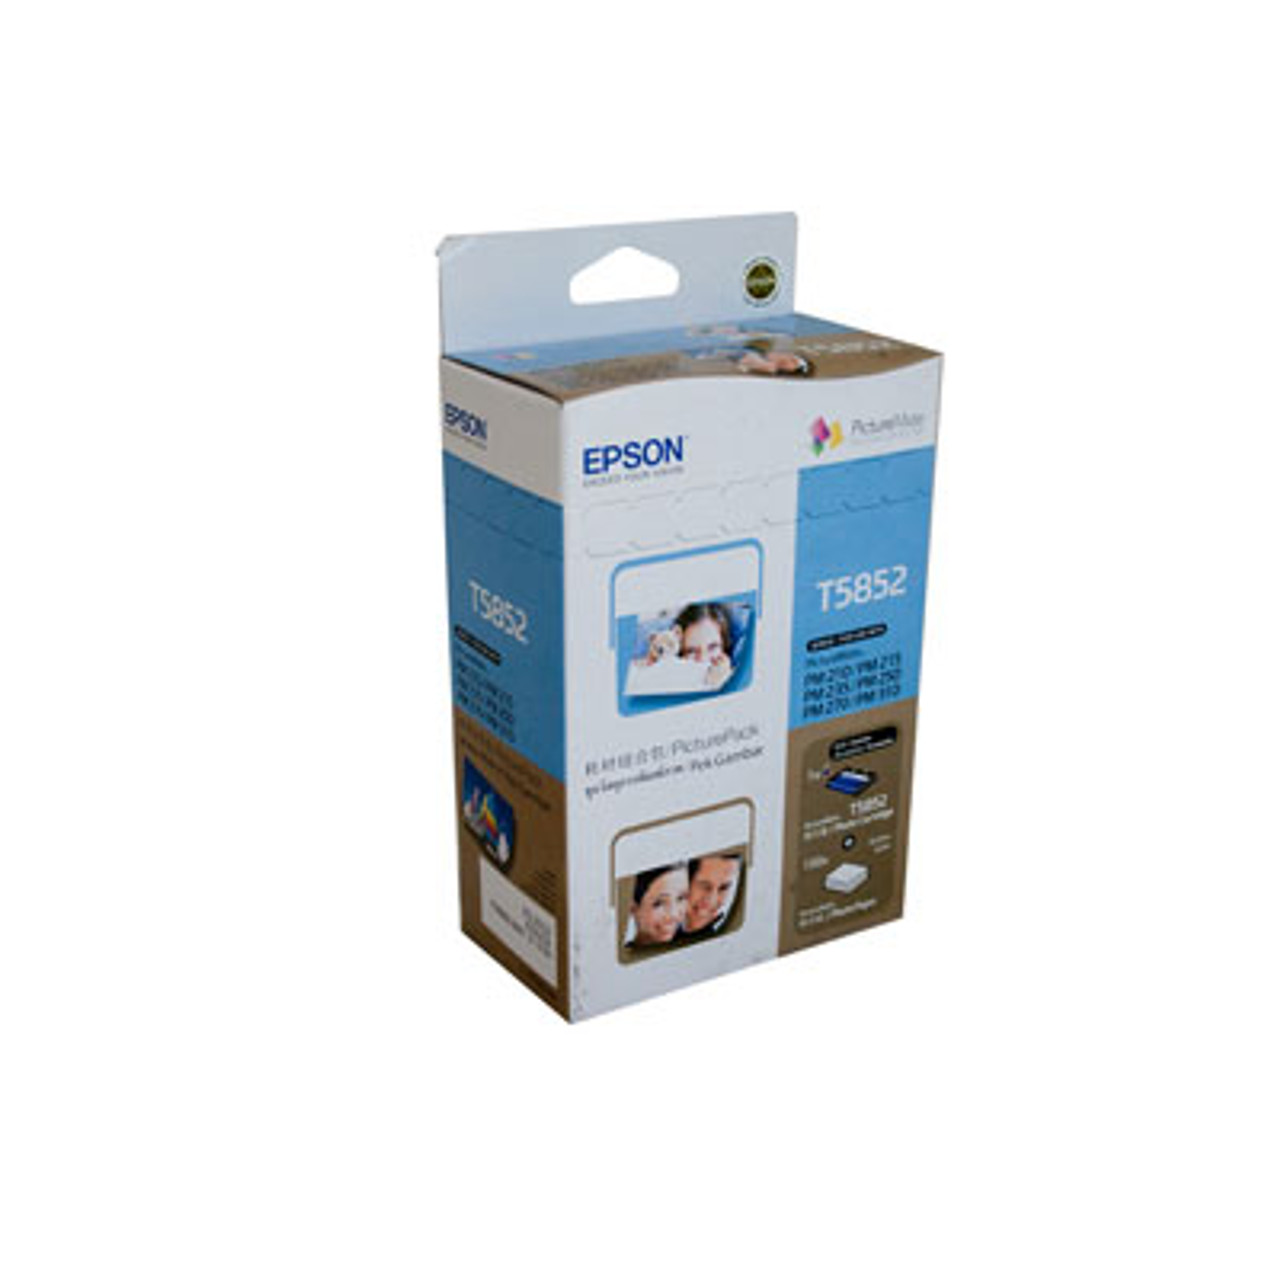 Image for Epson T585 Picturemate Cart 150 sheets Colour CX Computer Superstore